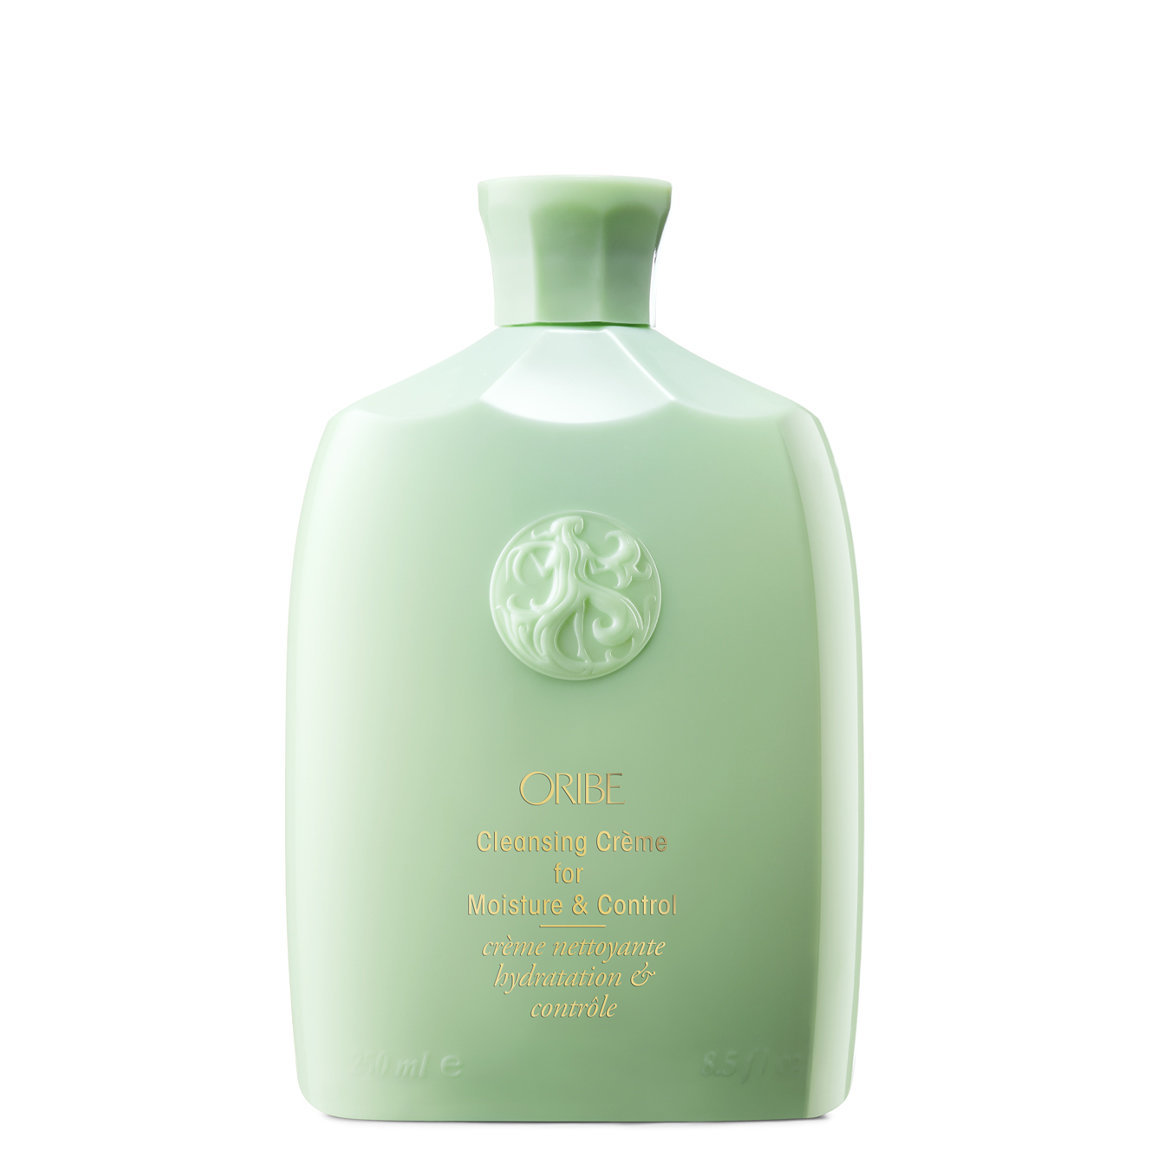 Oribe Cleansing Crème for Moisture & Control alternative view 1 - product swatch.